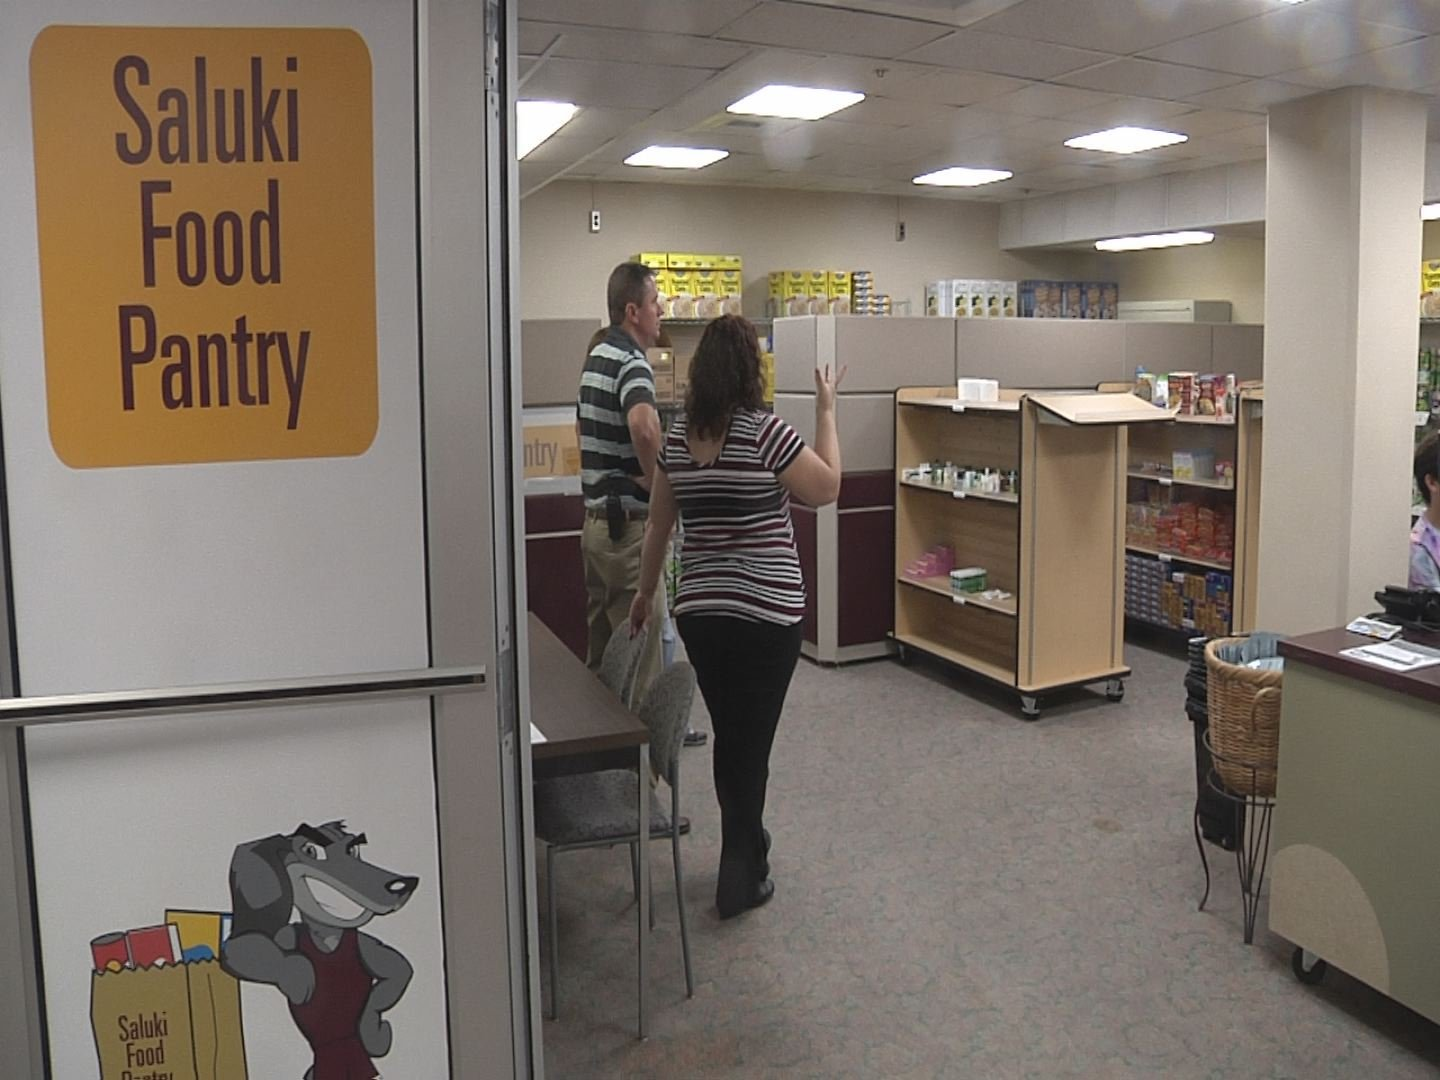 SIU's Saluki Food Pantry works to help feed students in need.